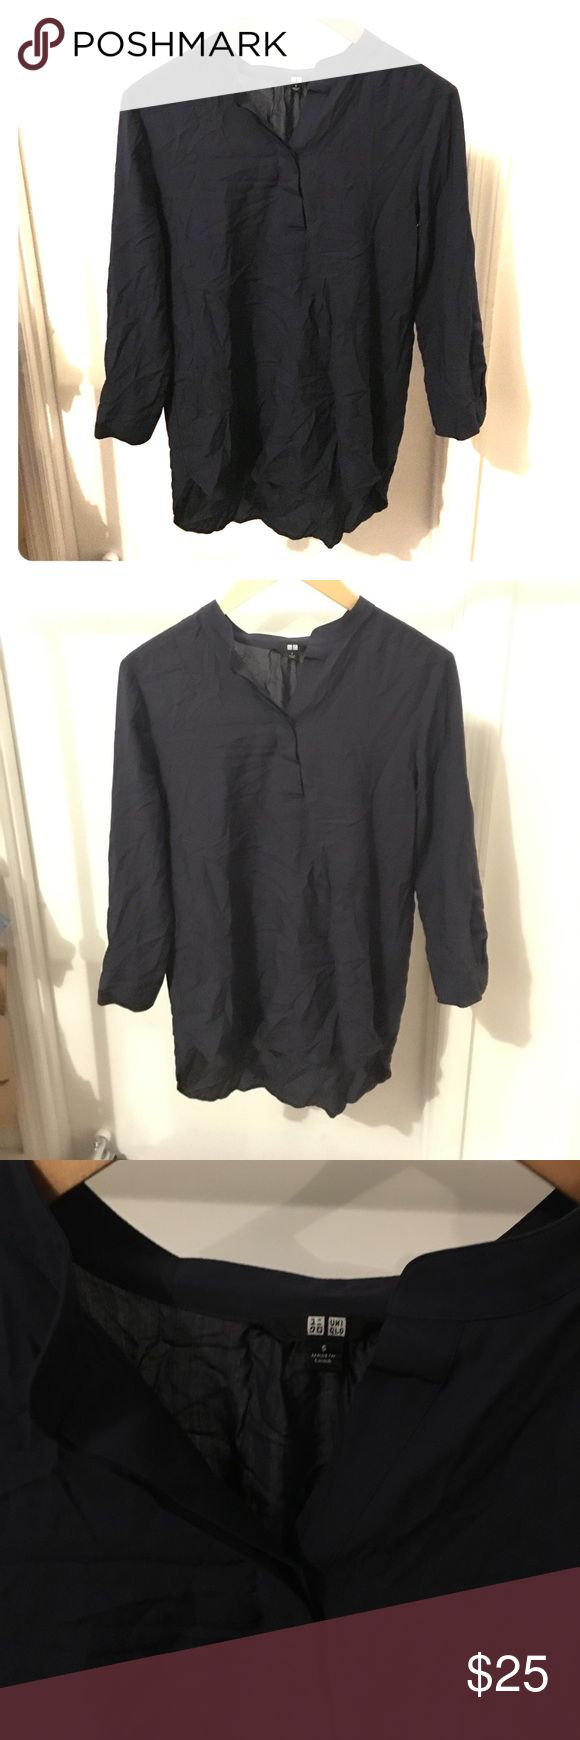 Uniqlo Navy Blue Tunic Top Size Small Four and airy Tunic Top. High low hem. Great condition - just wrinkled from storage. Rayon / poly blend. Size: small Uniqlo Tops Blouses